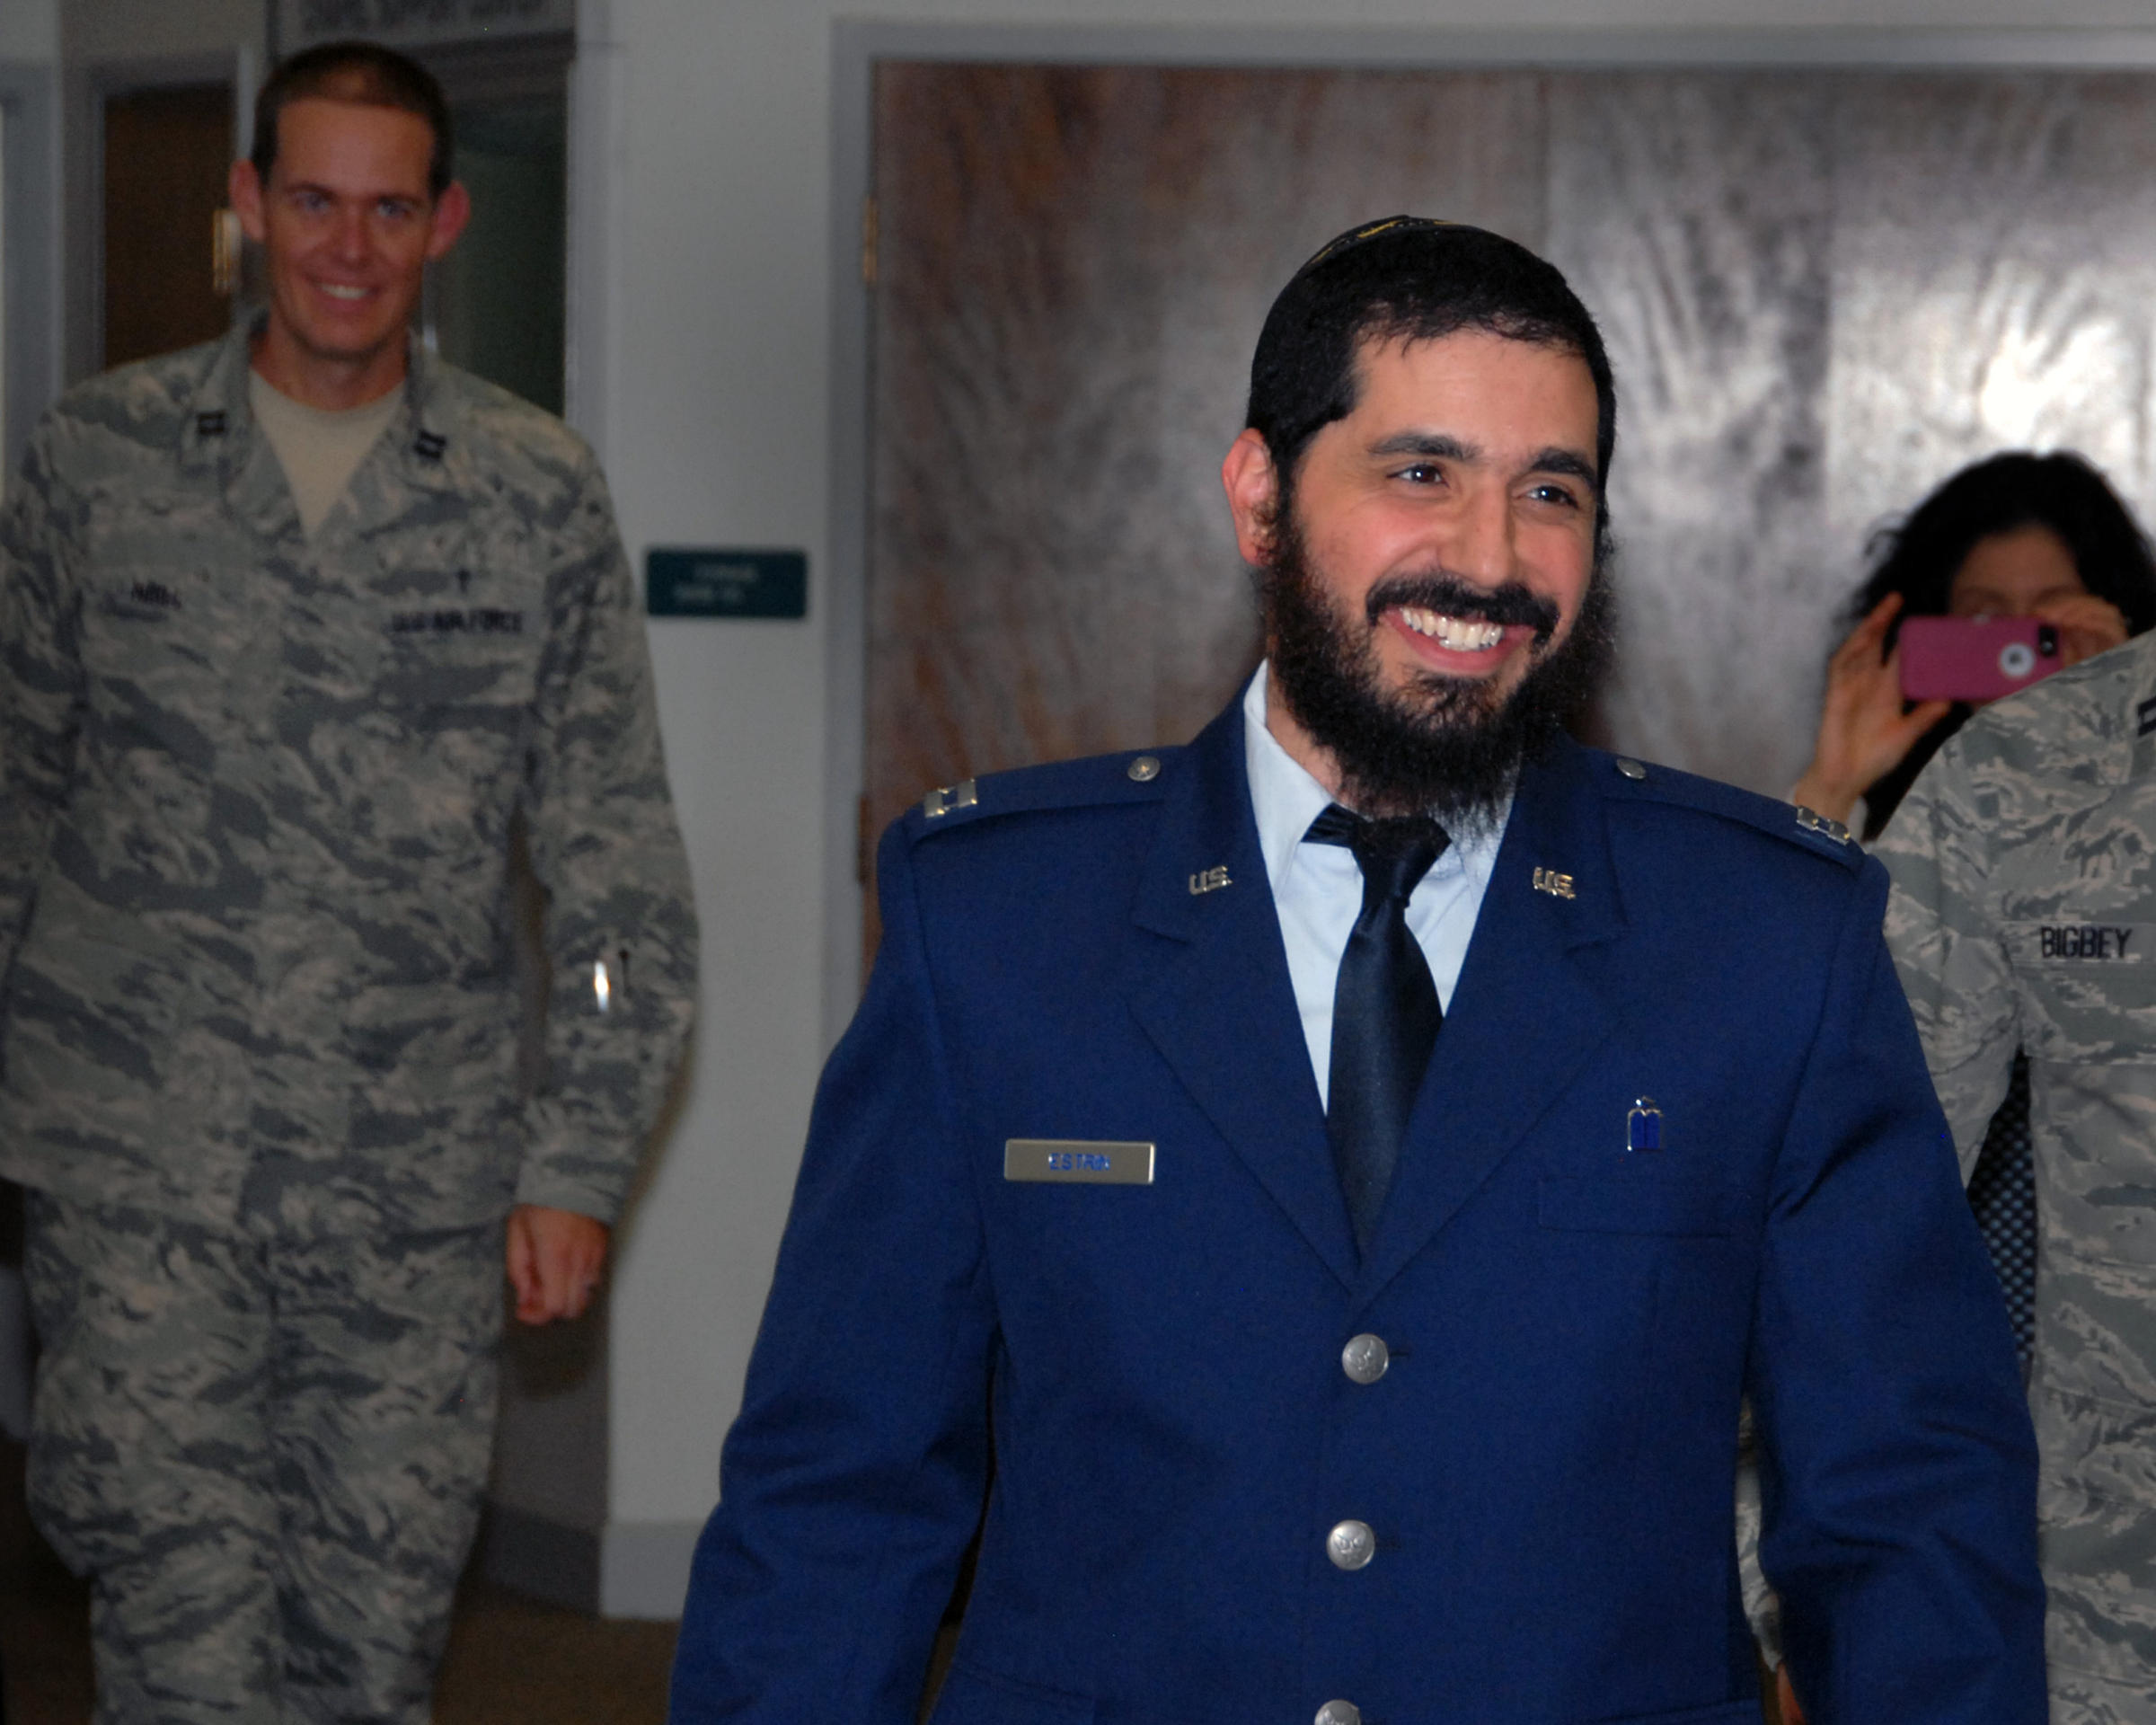 seattle rabbi becomes first bearded air force chaplain news rabbi elie estrin said he had no idea how complicated a uniform would be as he works to transition from civilian to military life